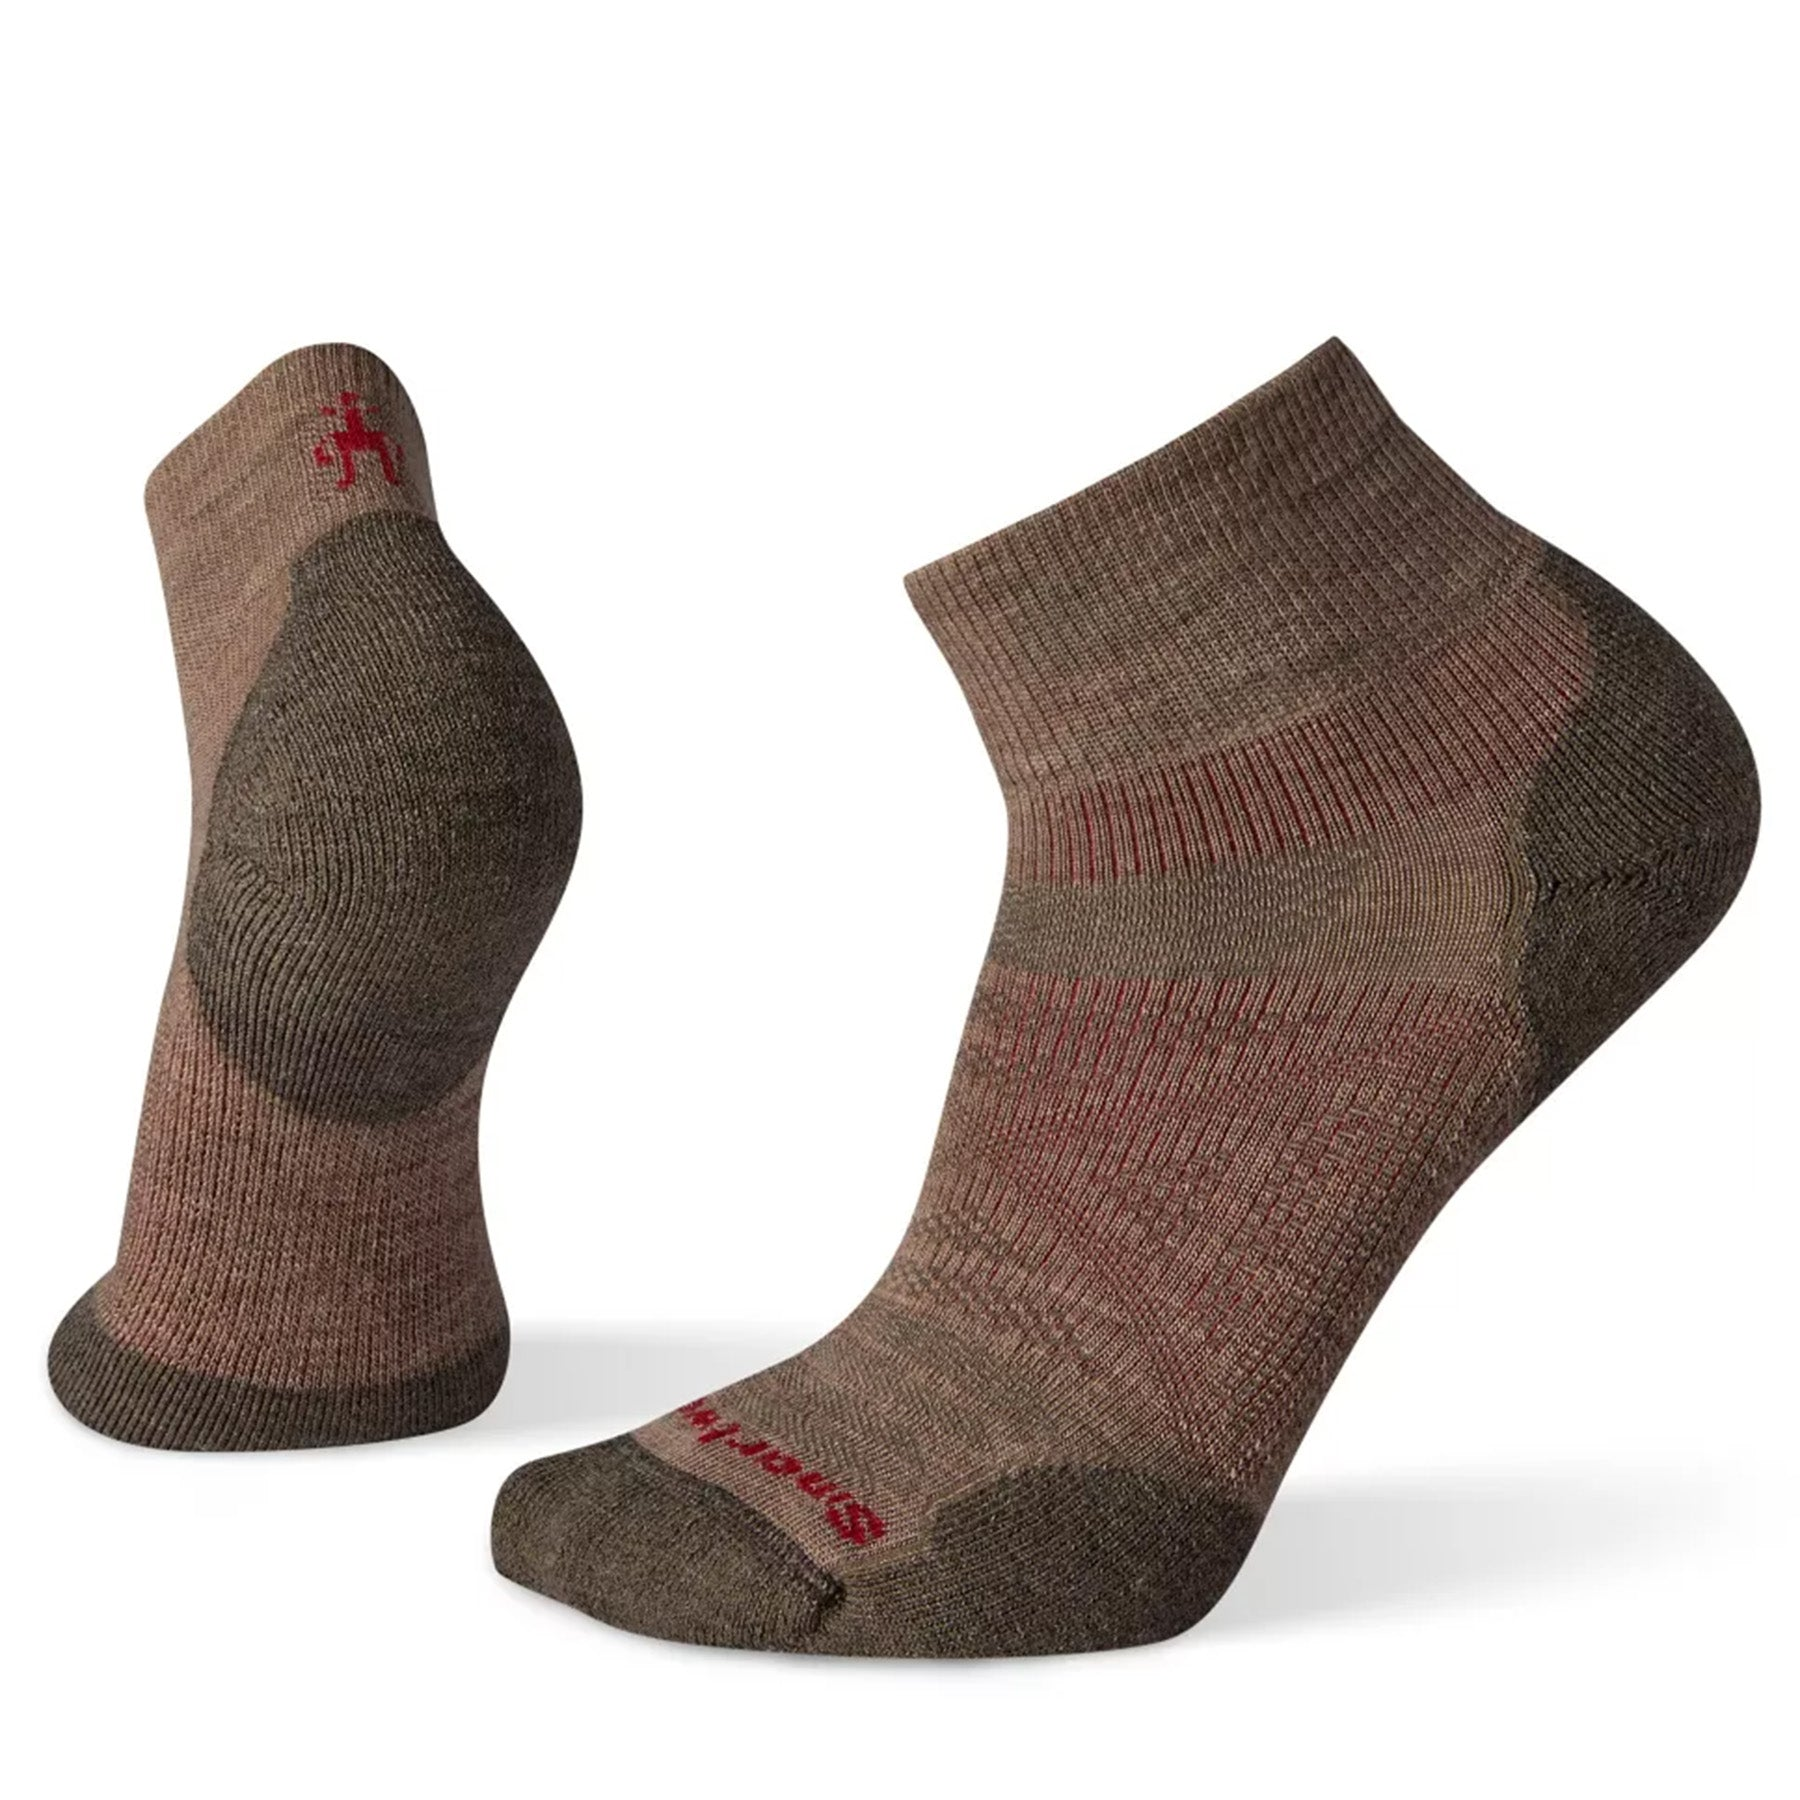 the fossil color of the sock